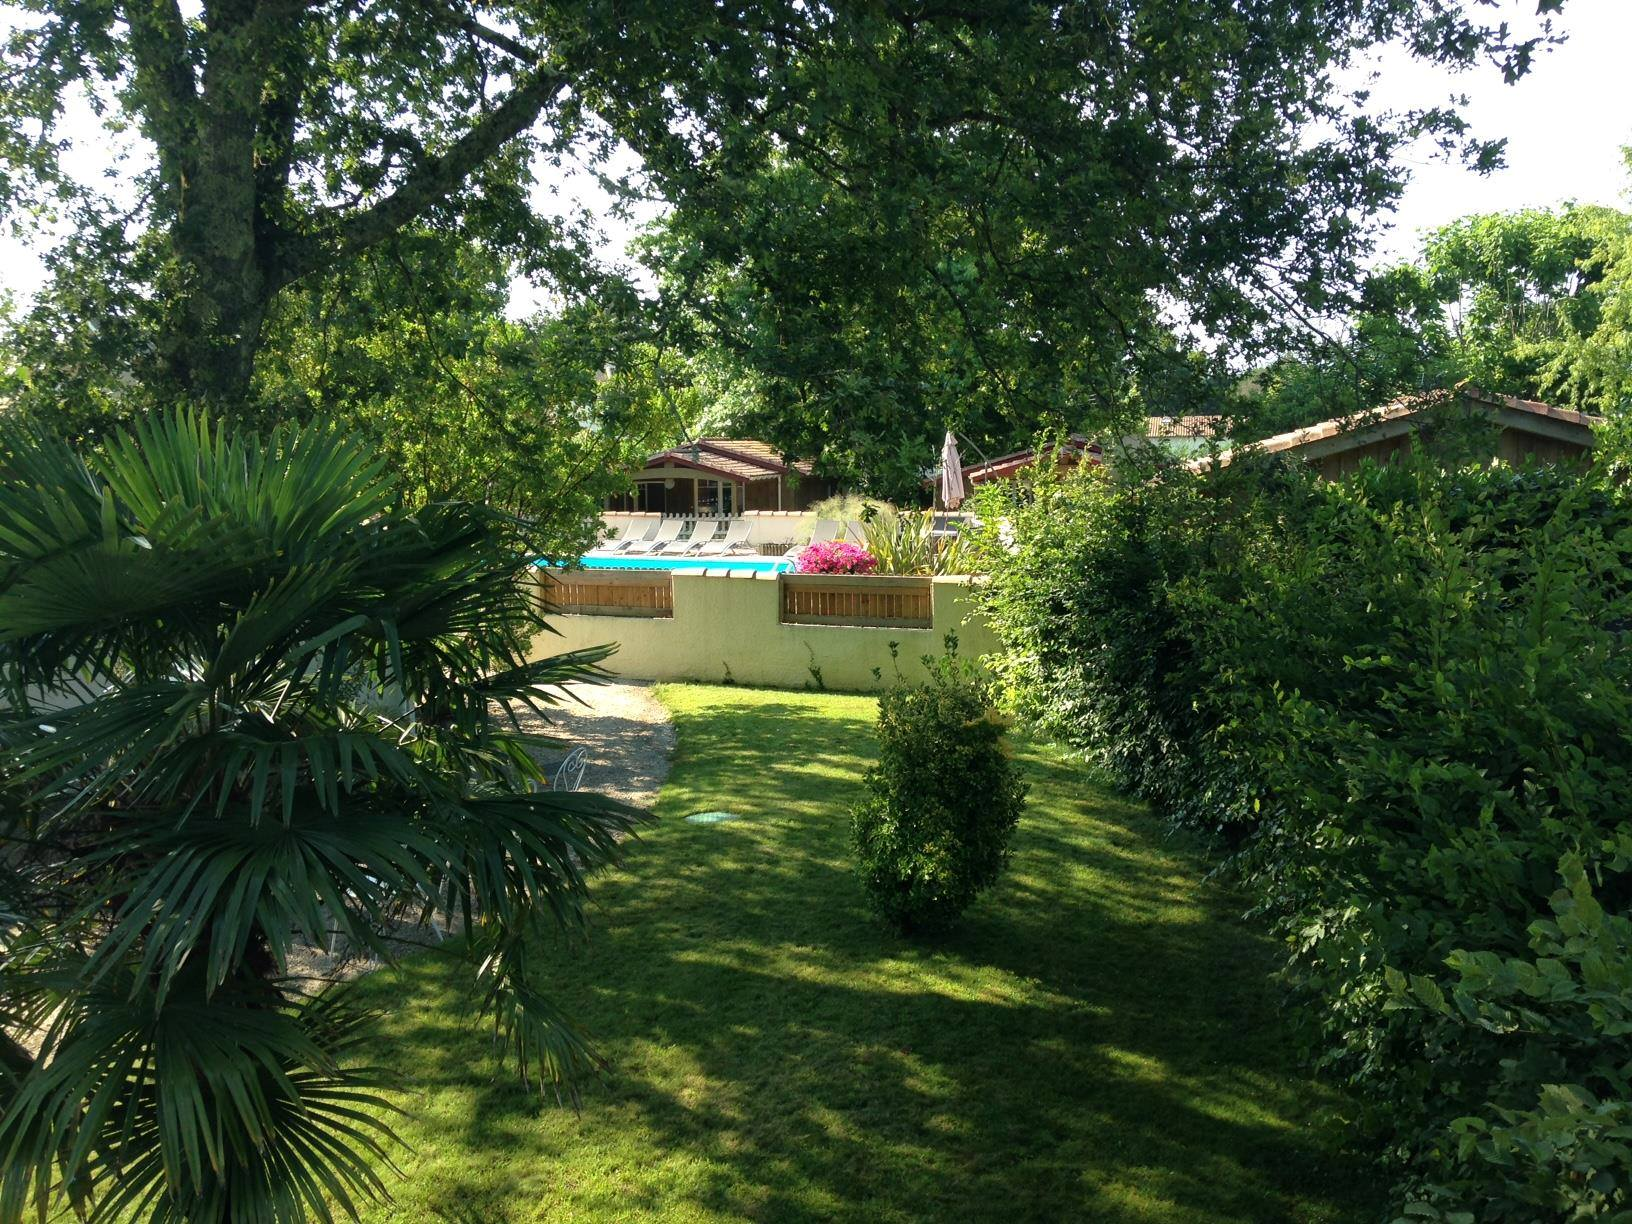 camping 4* avec piscine chauffée Ares